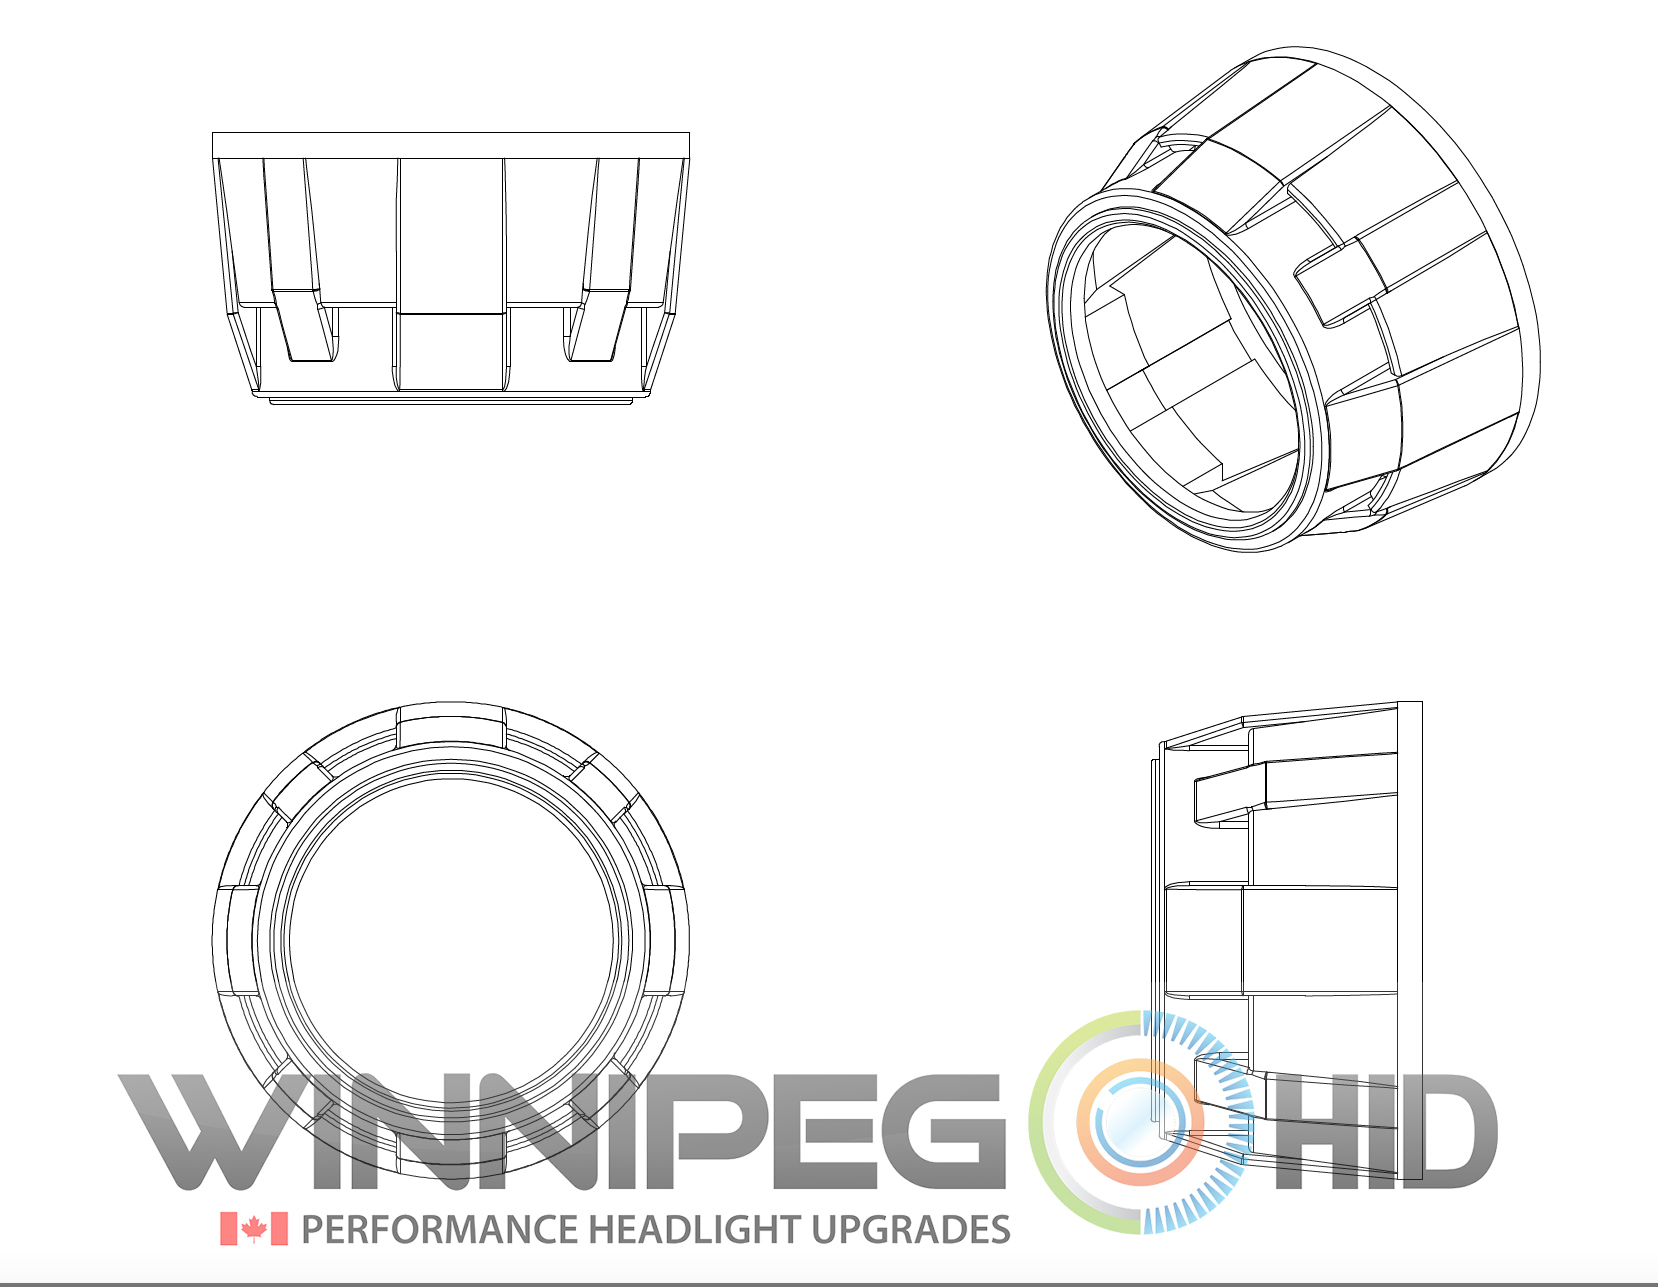 Mini Gatling Gun Winnipeg Hid